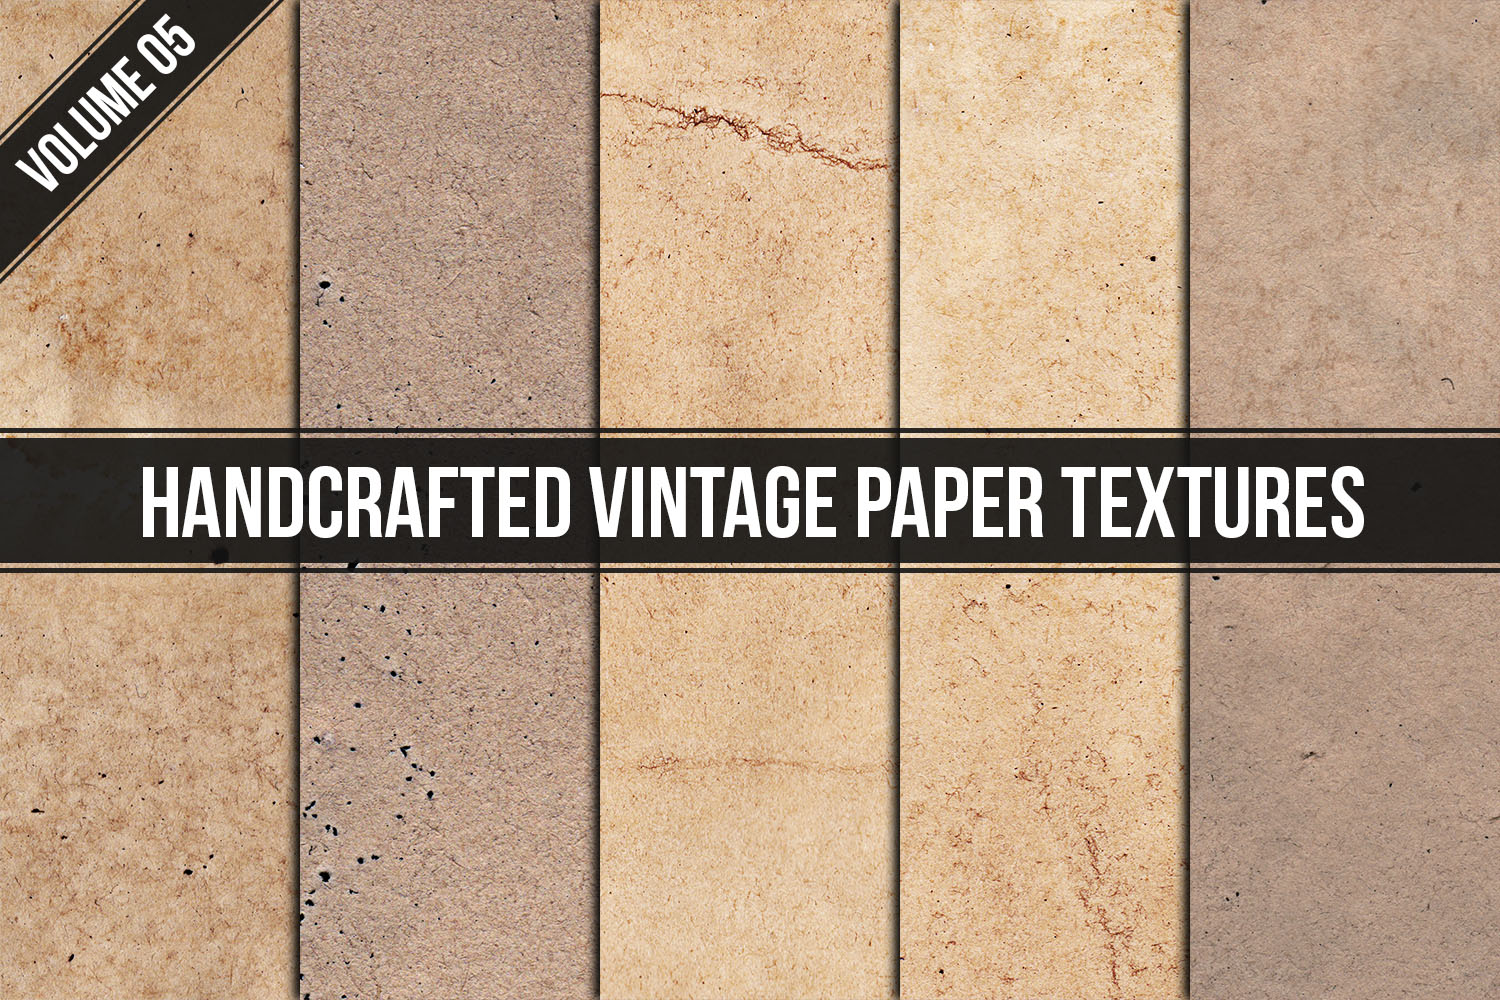 Handcrafted Vintage Paper Textures Vol. 05 example image 1